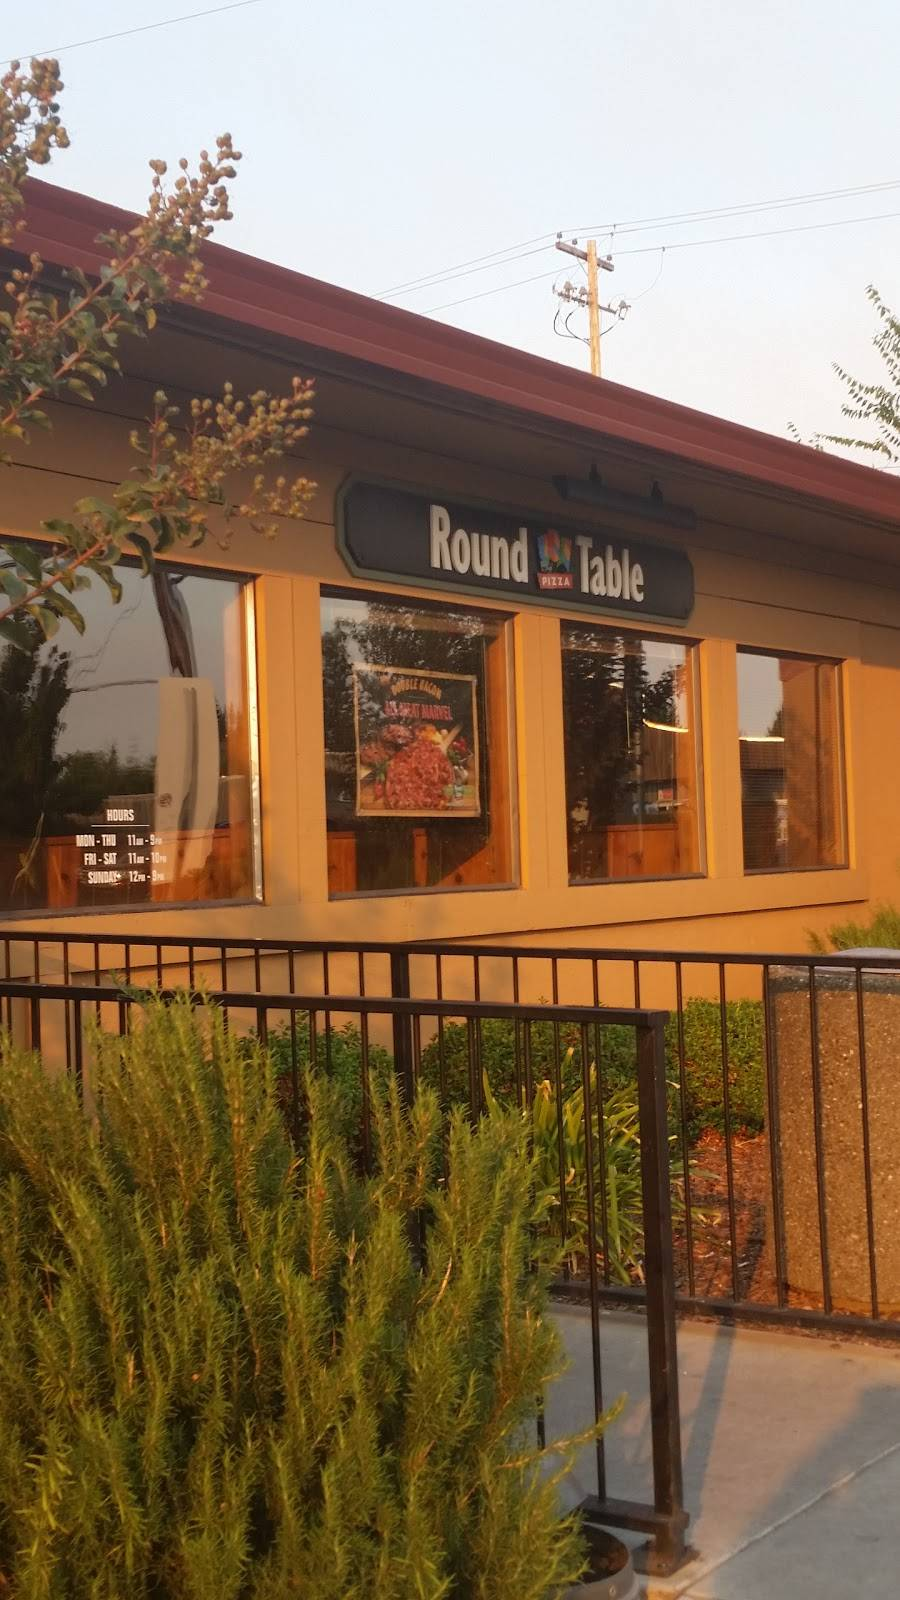 Round Table Pizza | meal delivery | 1351 Healdsburg Ave, Healdsburg, CA 95448, USA | 7074338877 OR +1 707-433-8877